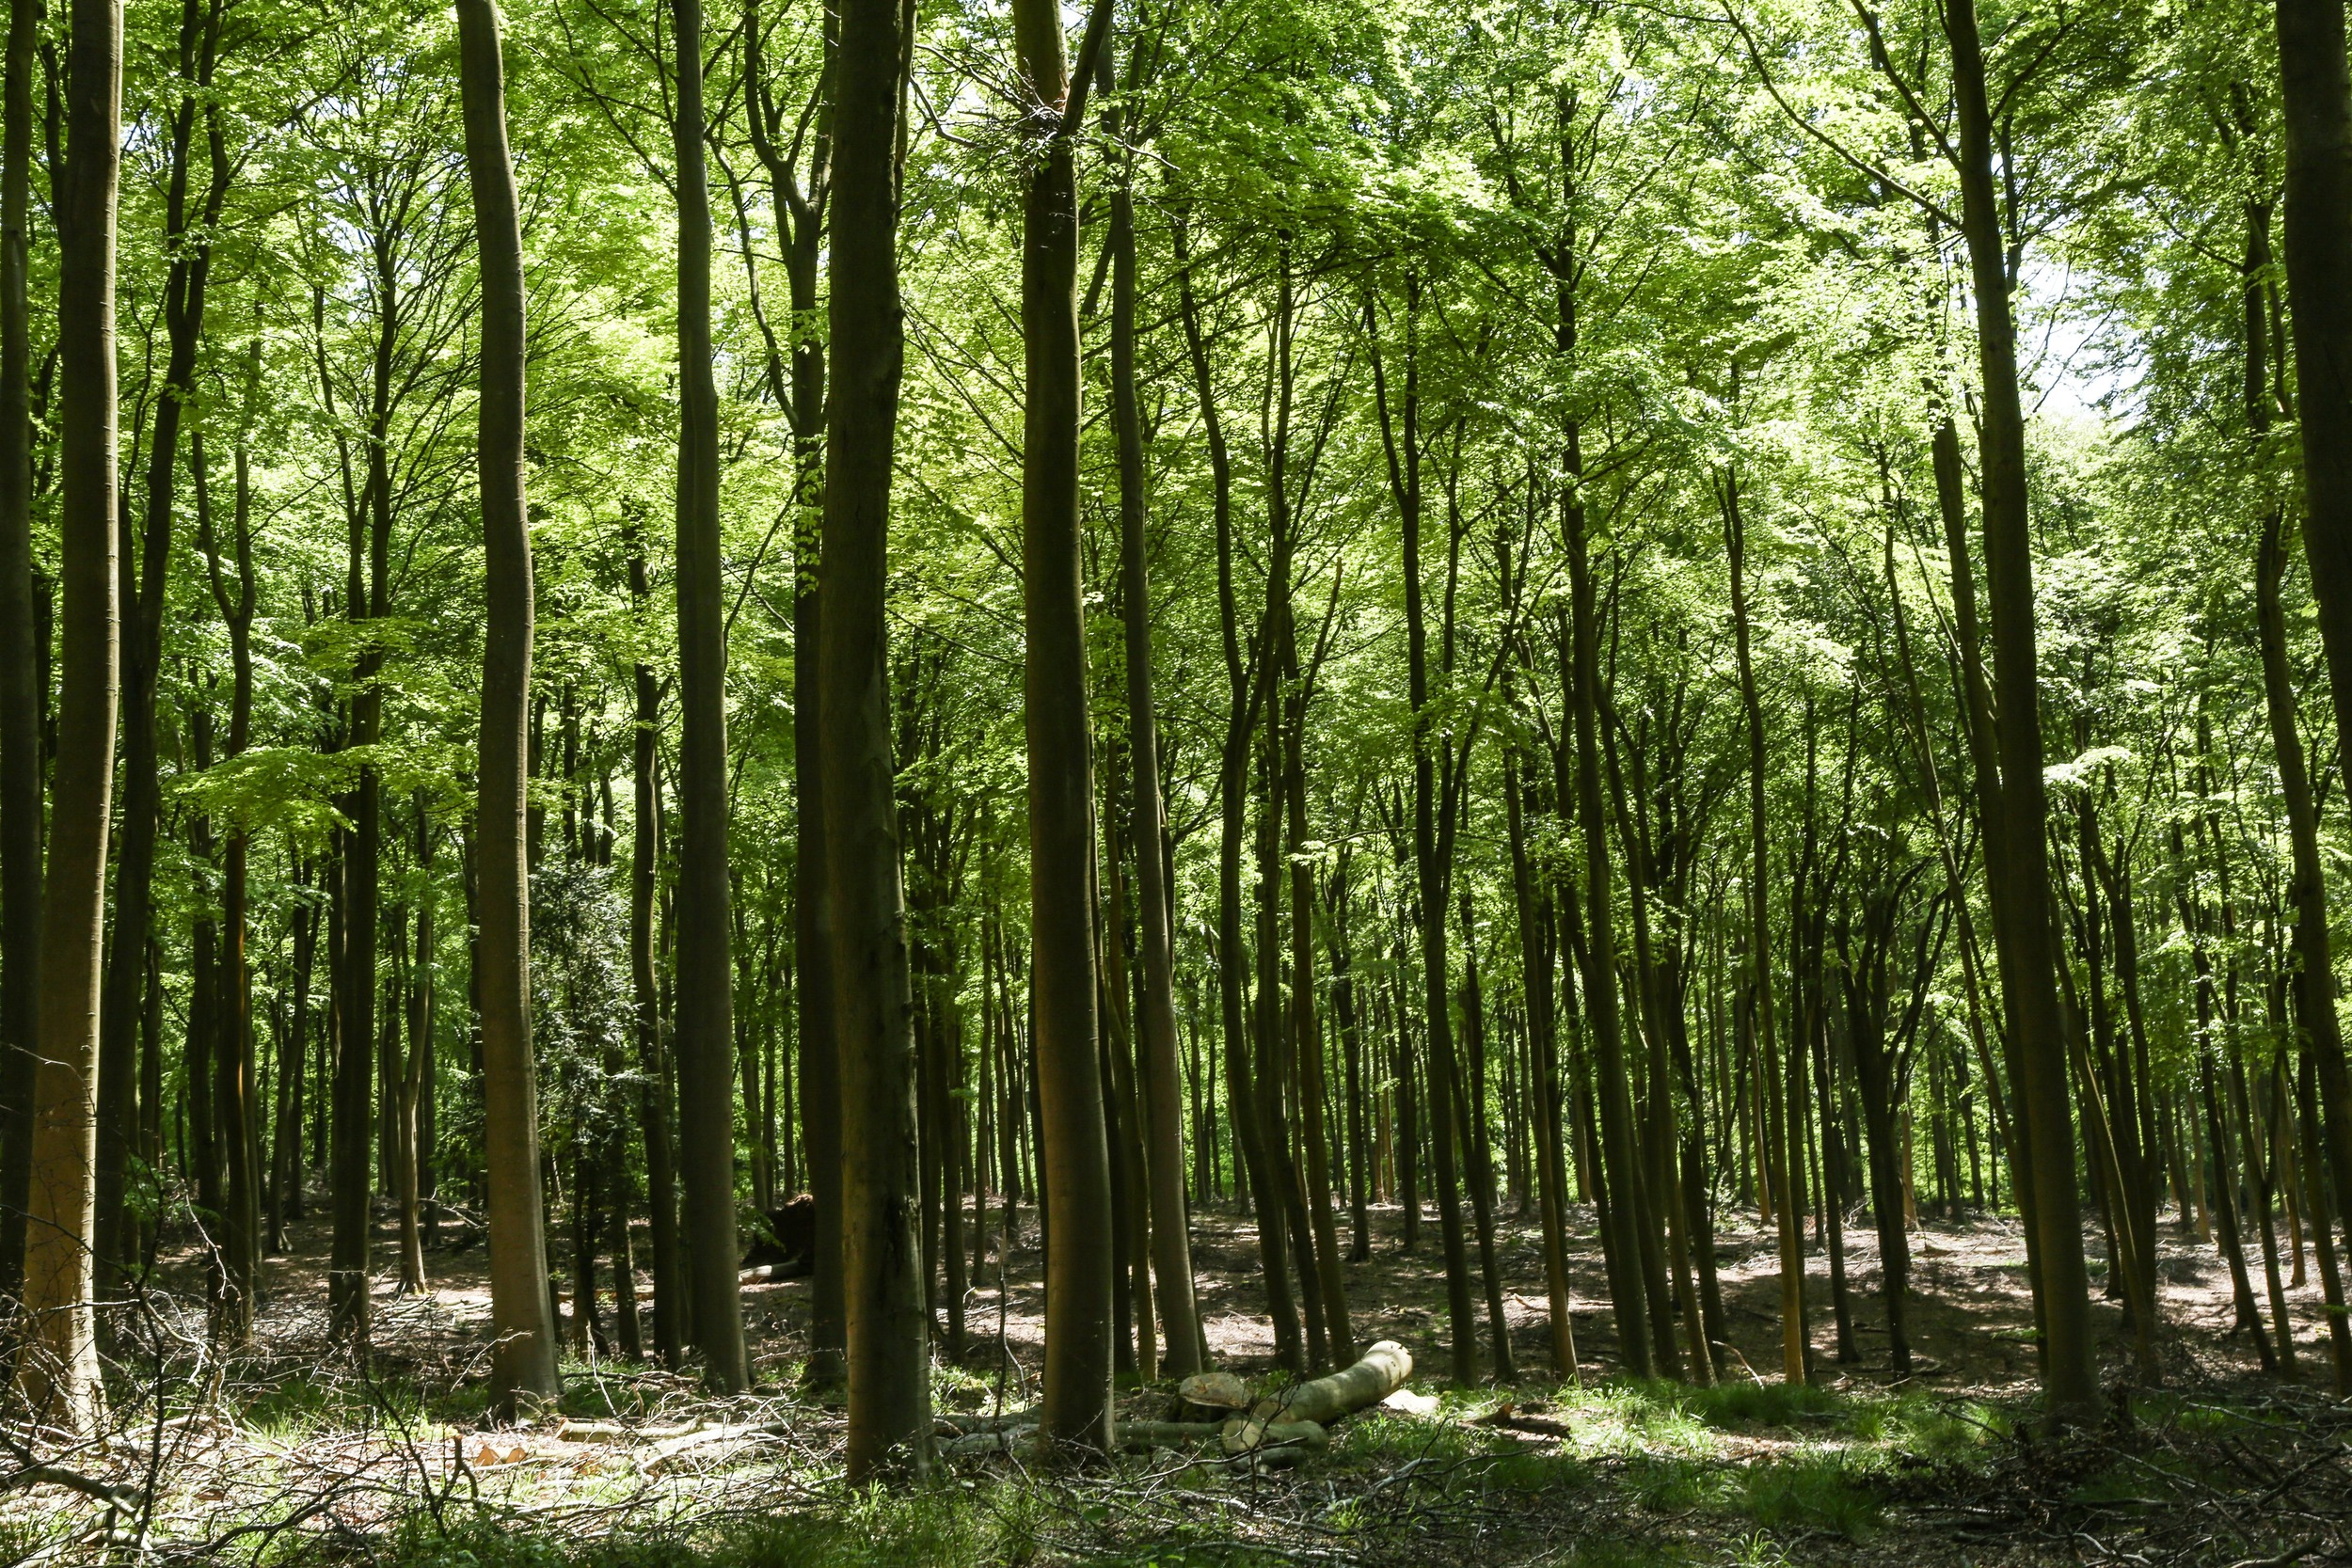 Blackwood Forest in Hampshire